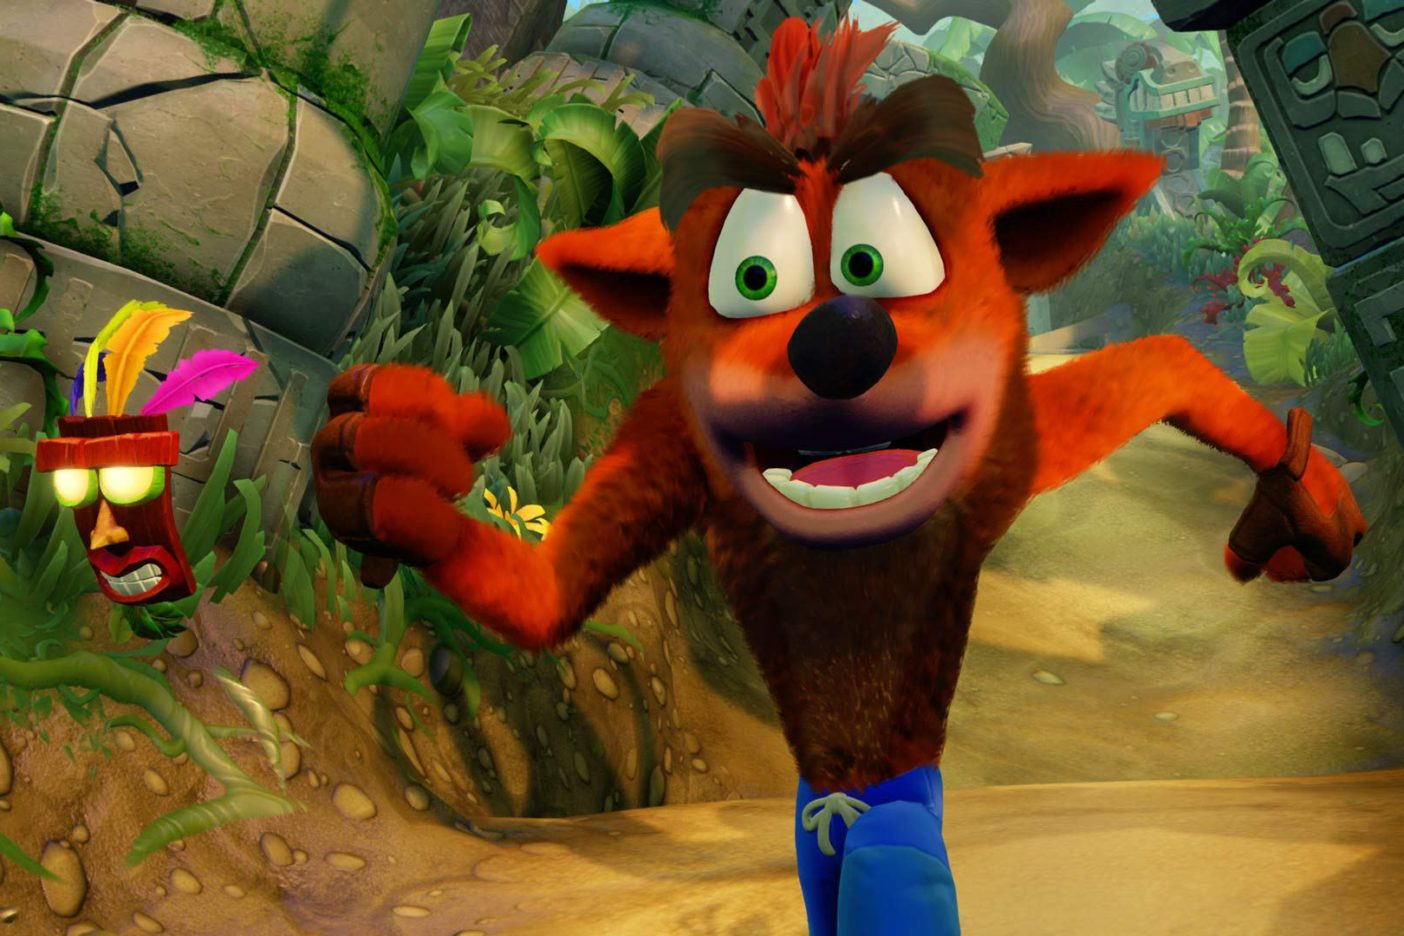 22 Years Later And Crash Bandicoot Is Still As Incredible As Ever 114 1404x936